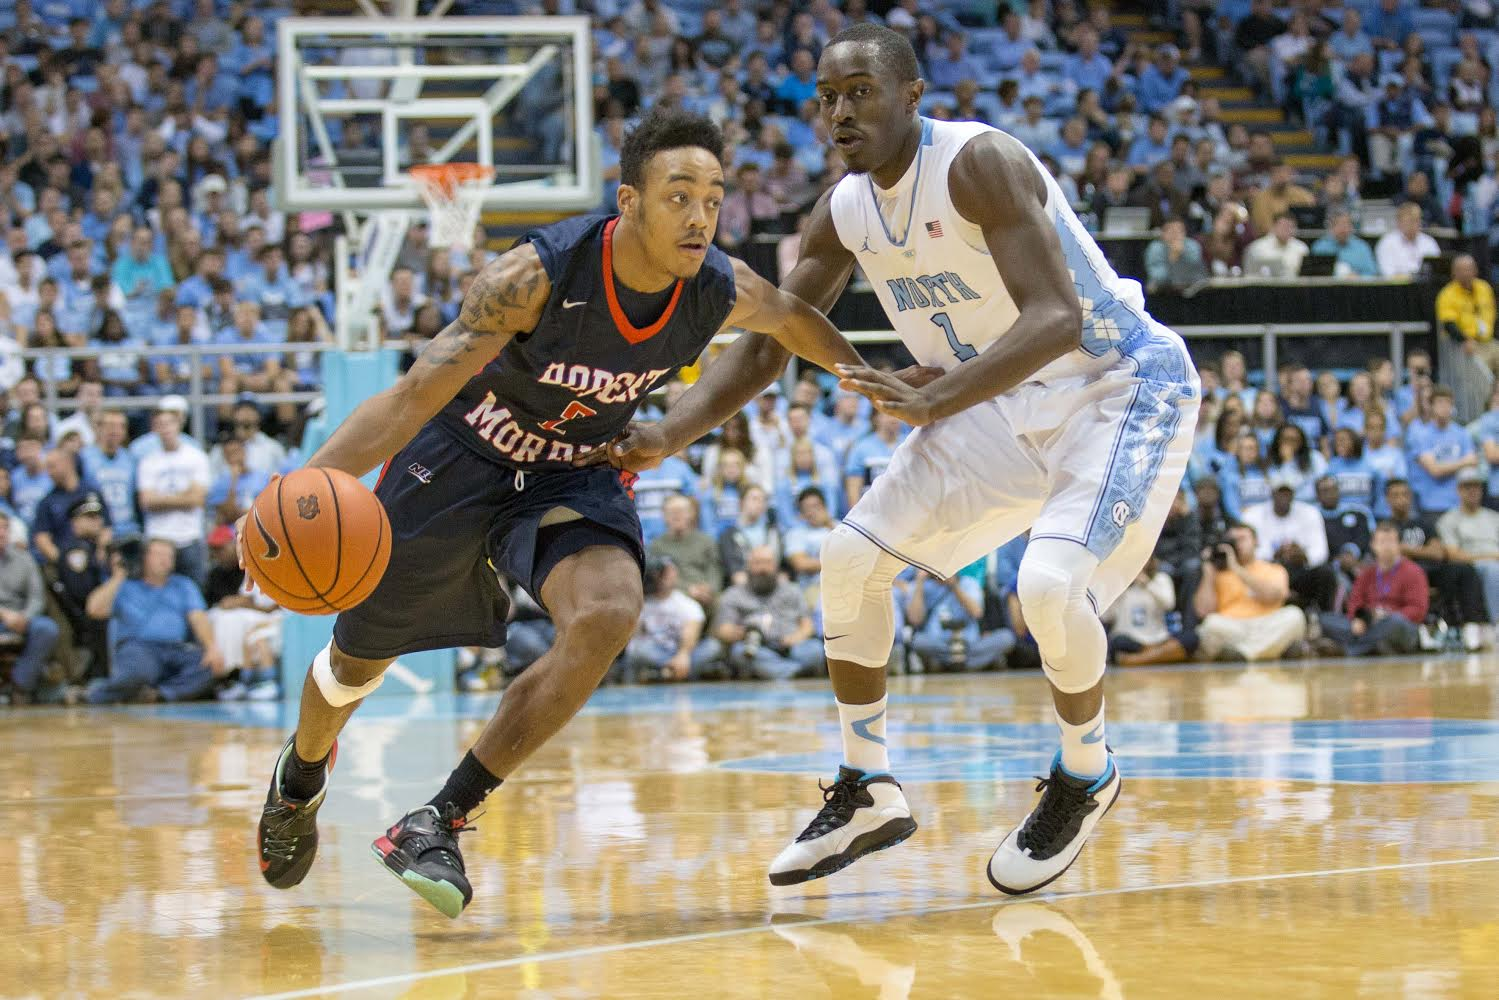 Despite a 24 point performance from Marcquise Reed, Robert Morris could not upset No. 6 ranked North Carolina Sunday night in the Battle 4 Atlantis Tournament.